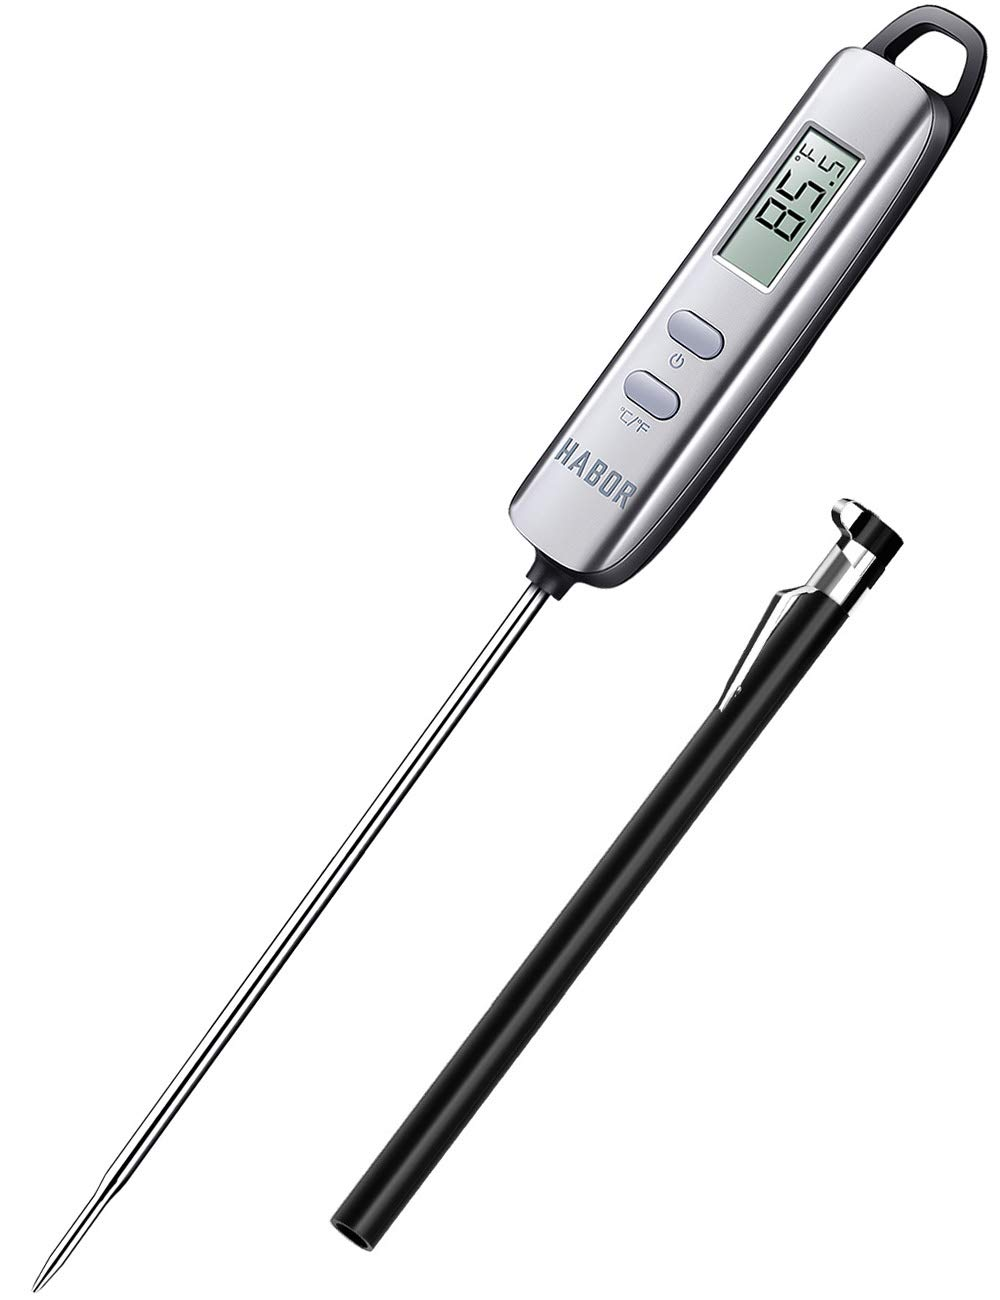 Habor Instant Read Digital Cooking, Candy Thermometer with Super Long Food Probe for Kitchen BBQ Grill Smoker Meat Oil Milk